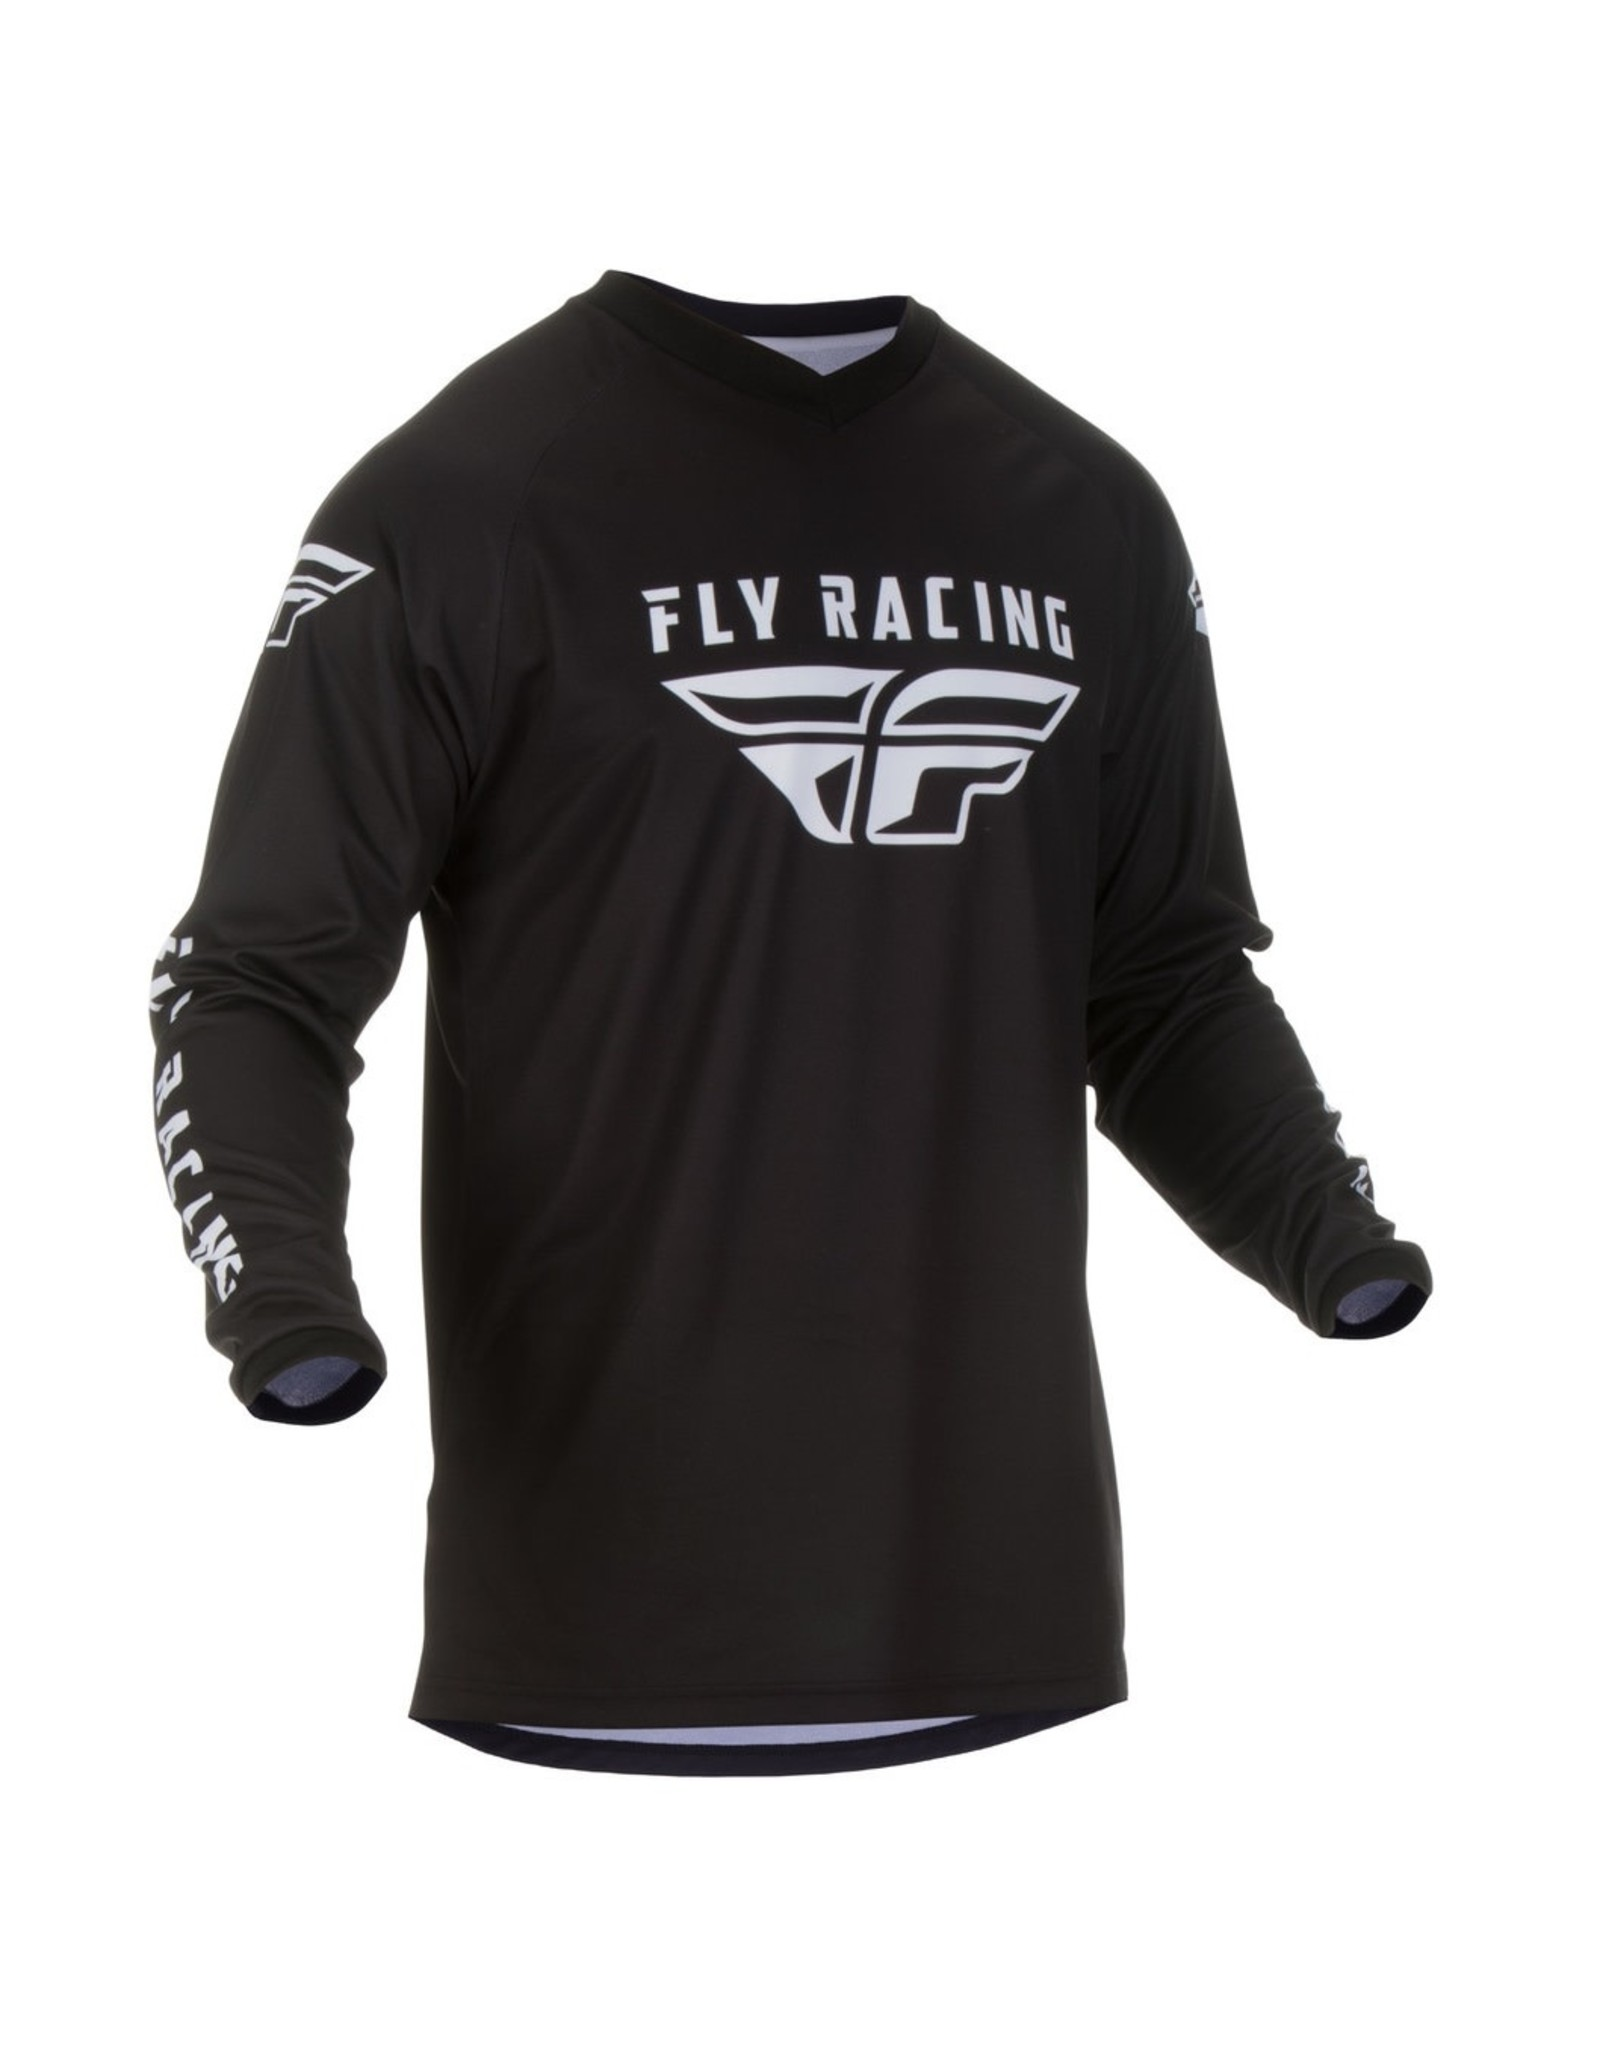 FLY RACING Fly Racing Universal Jersey Black